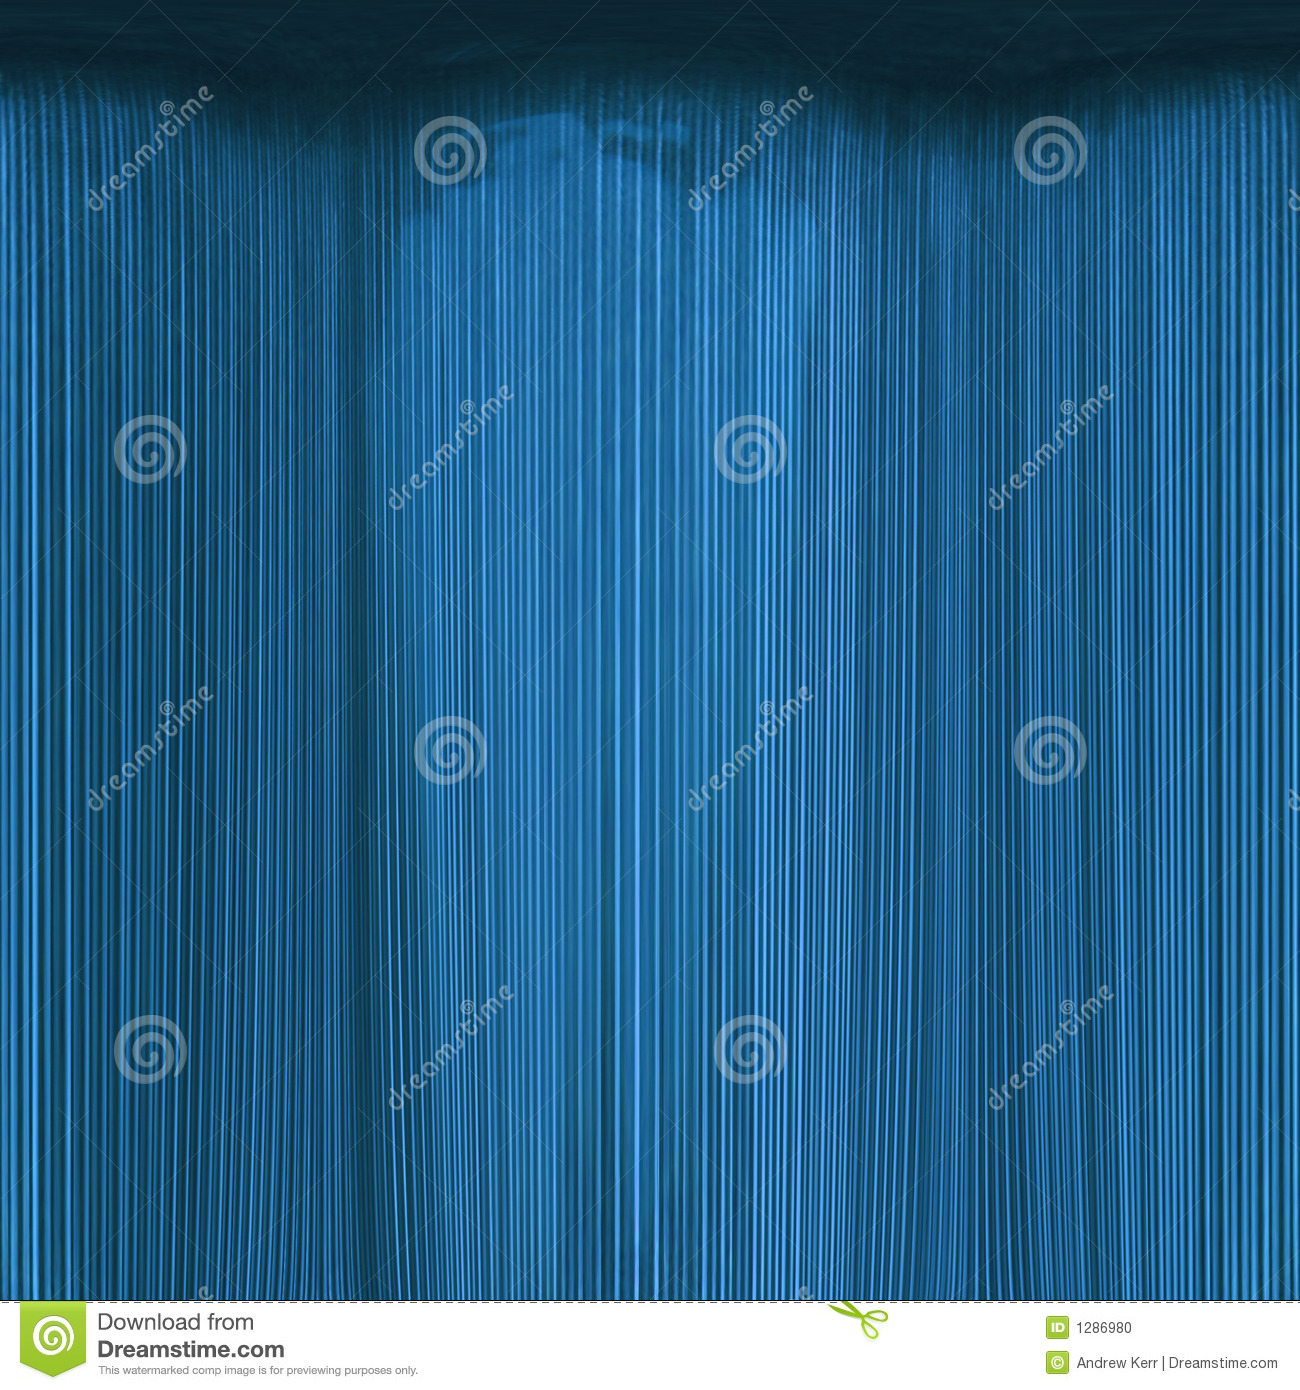 Sea-blue theatre-curtain abstract